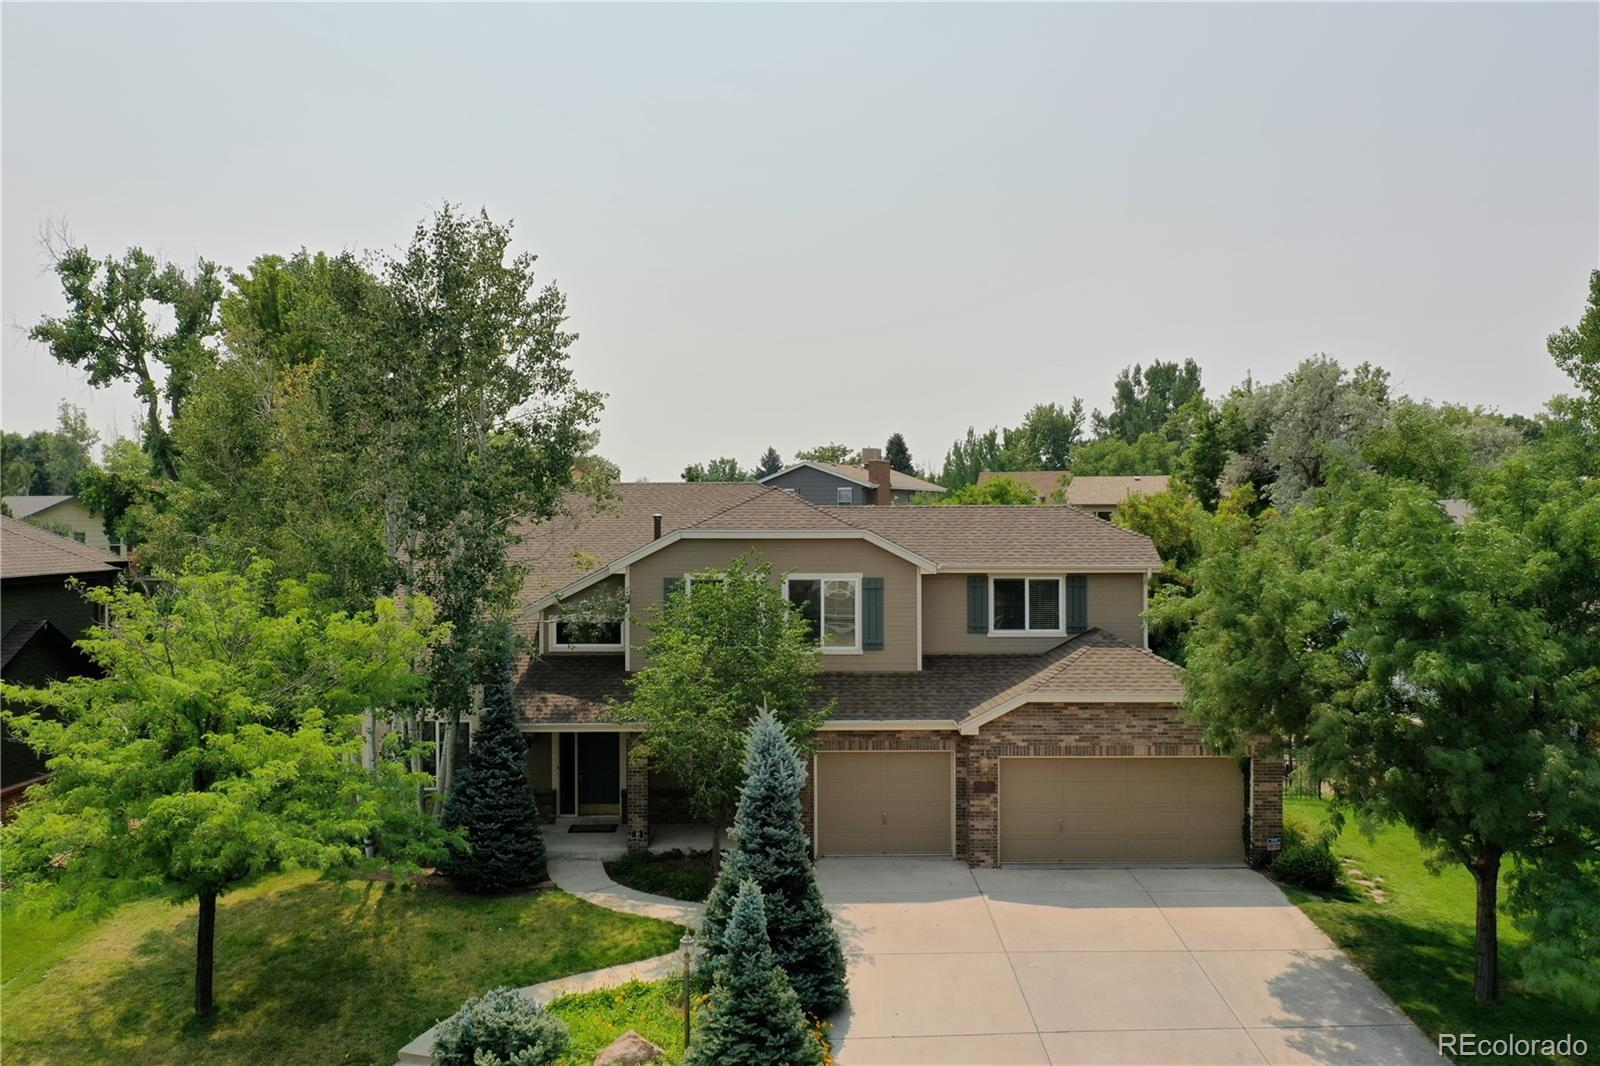 13642 W 67th Place, Arvada, CO 80004 - #: 4117739